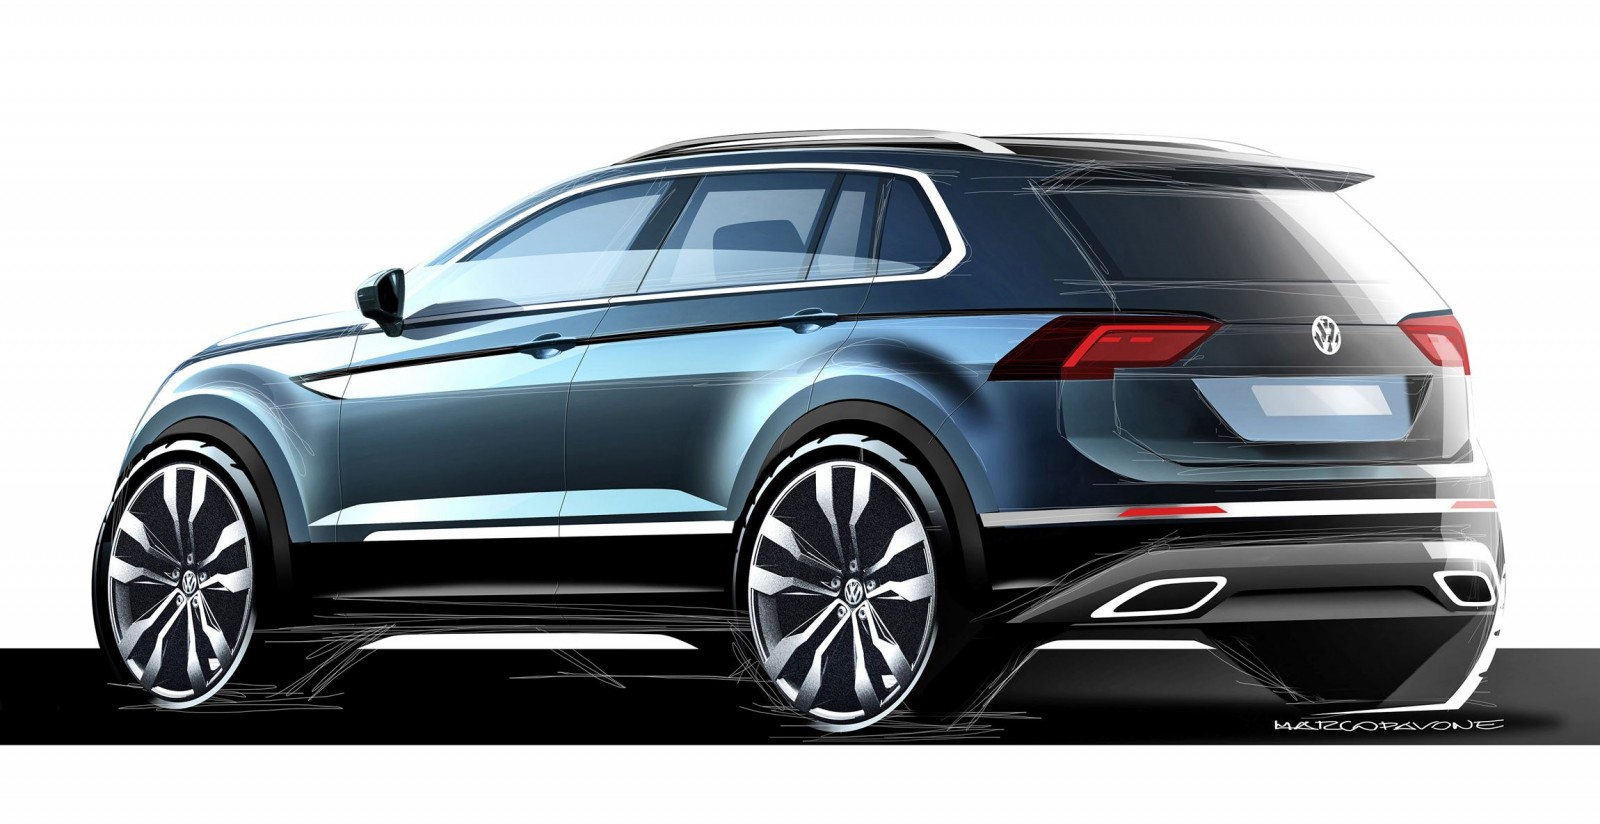 2017 volkswagen tiguan. Black Bedroom Furniture Sets. Home Design Ideas